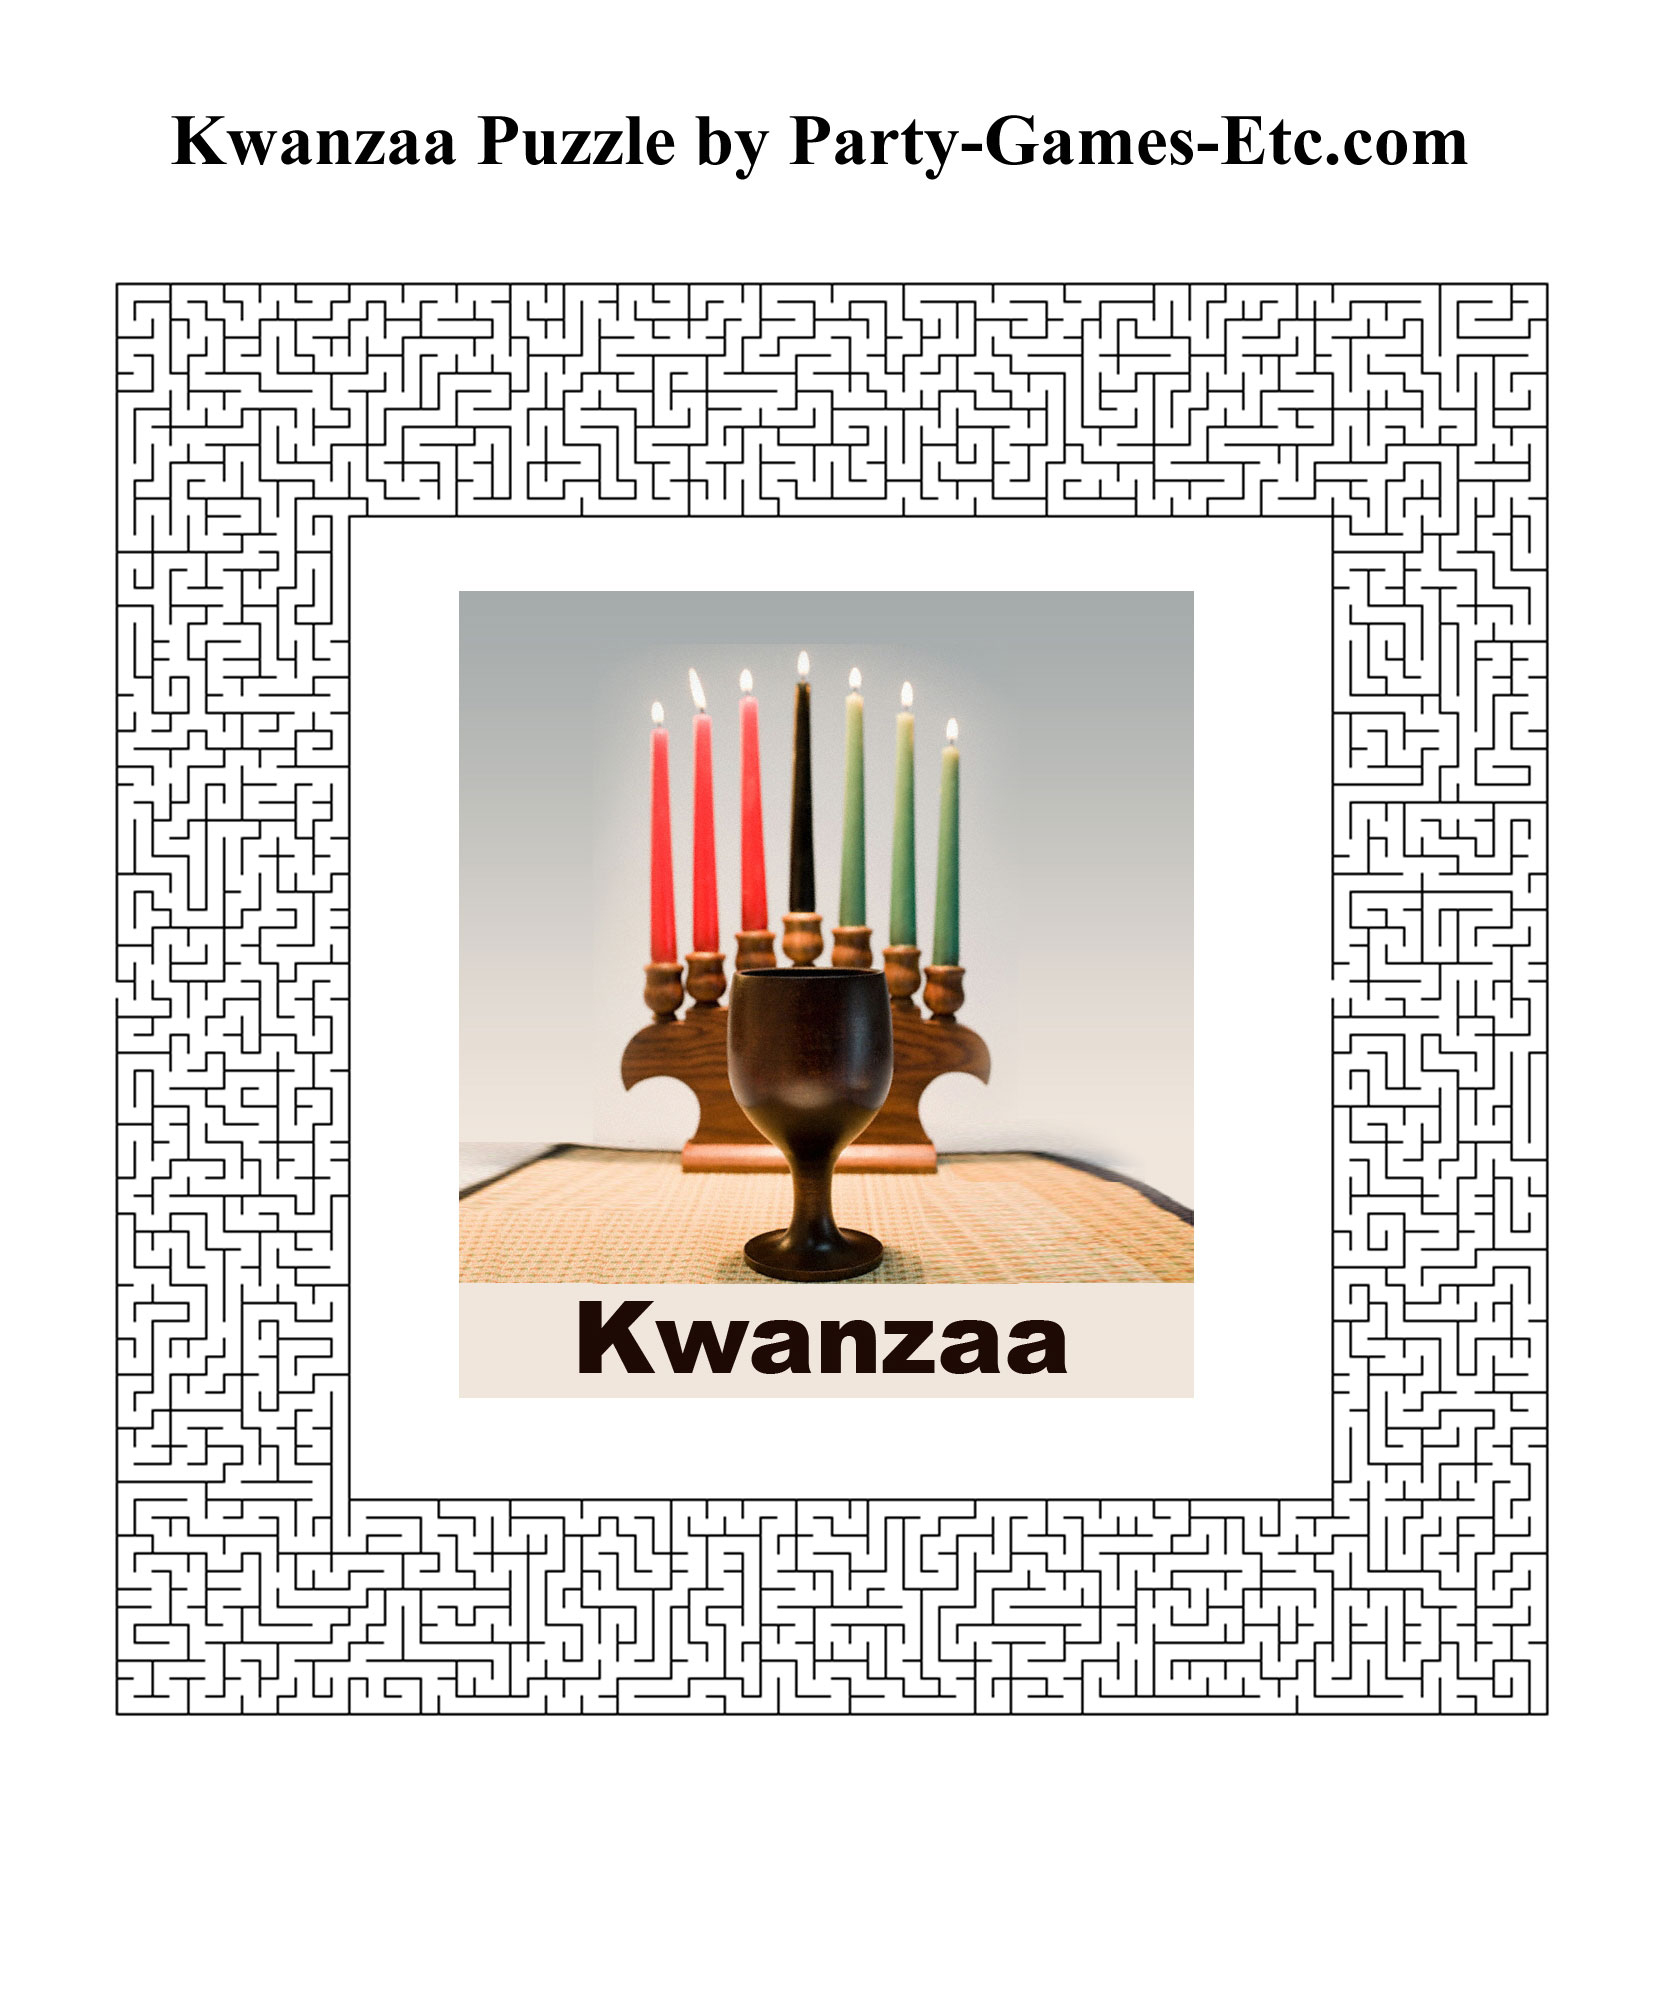 Kwanzaa Party Games, Free Printable Games And Activities For A - Kwanzaa Trivia Free Printable